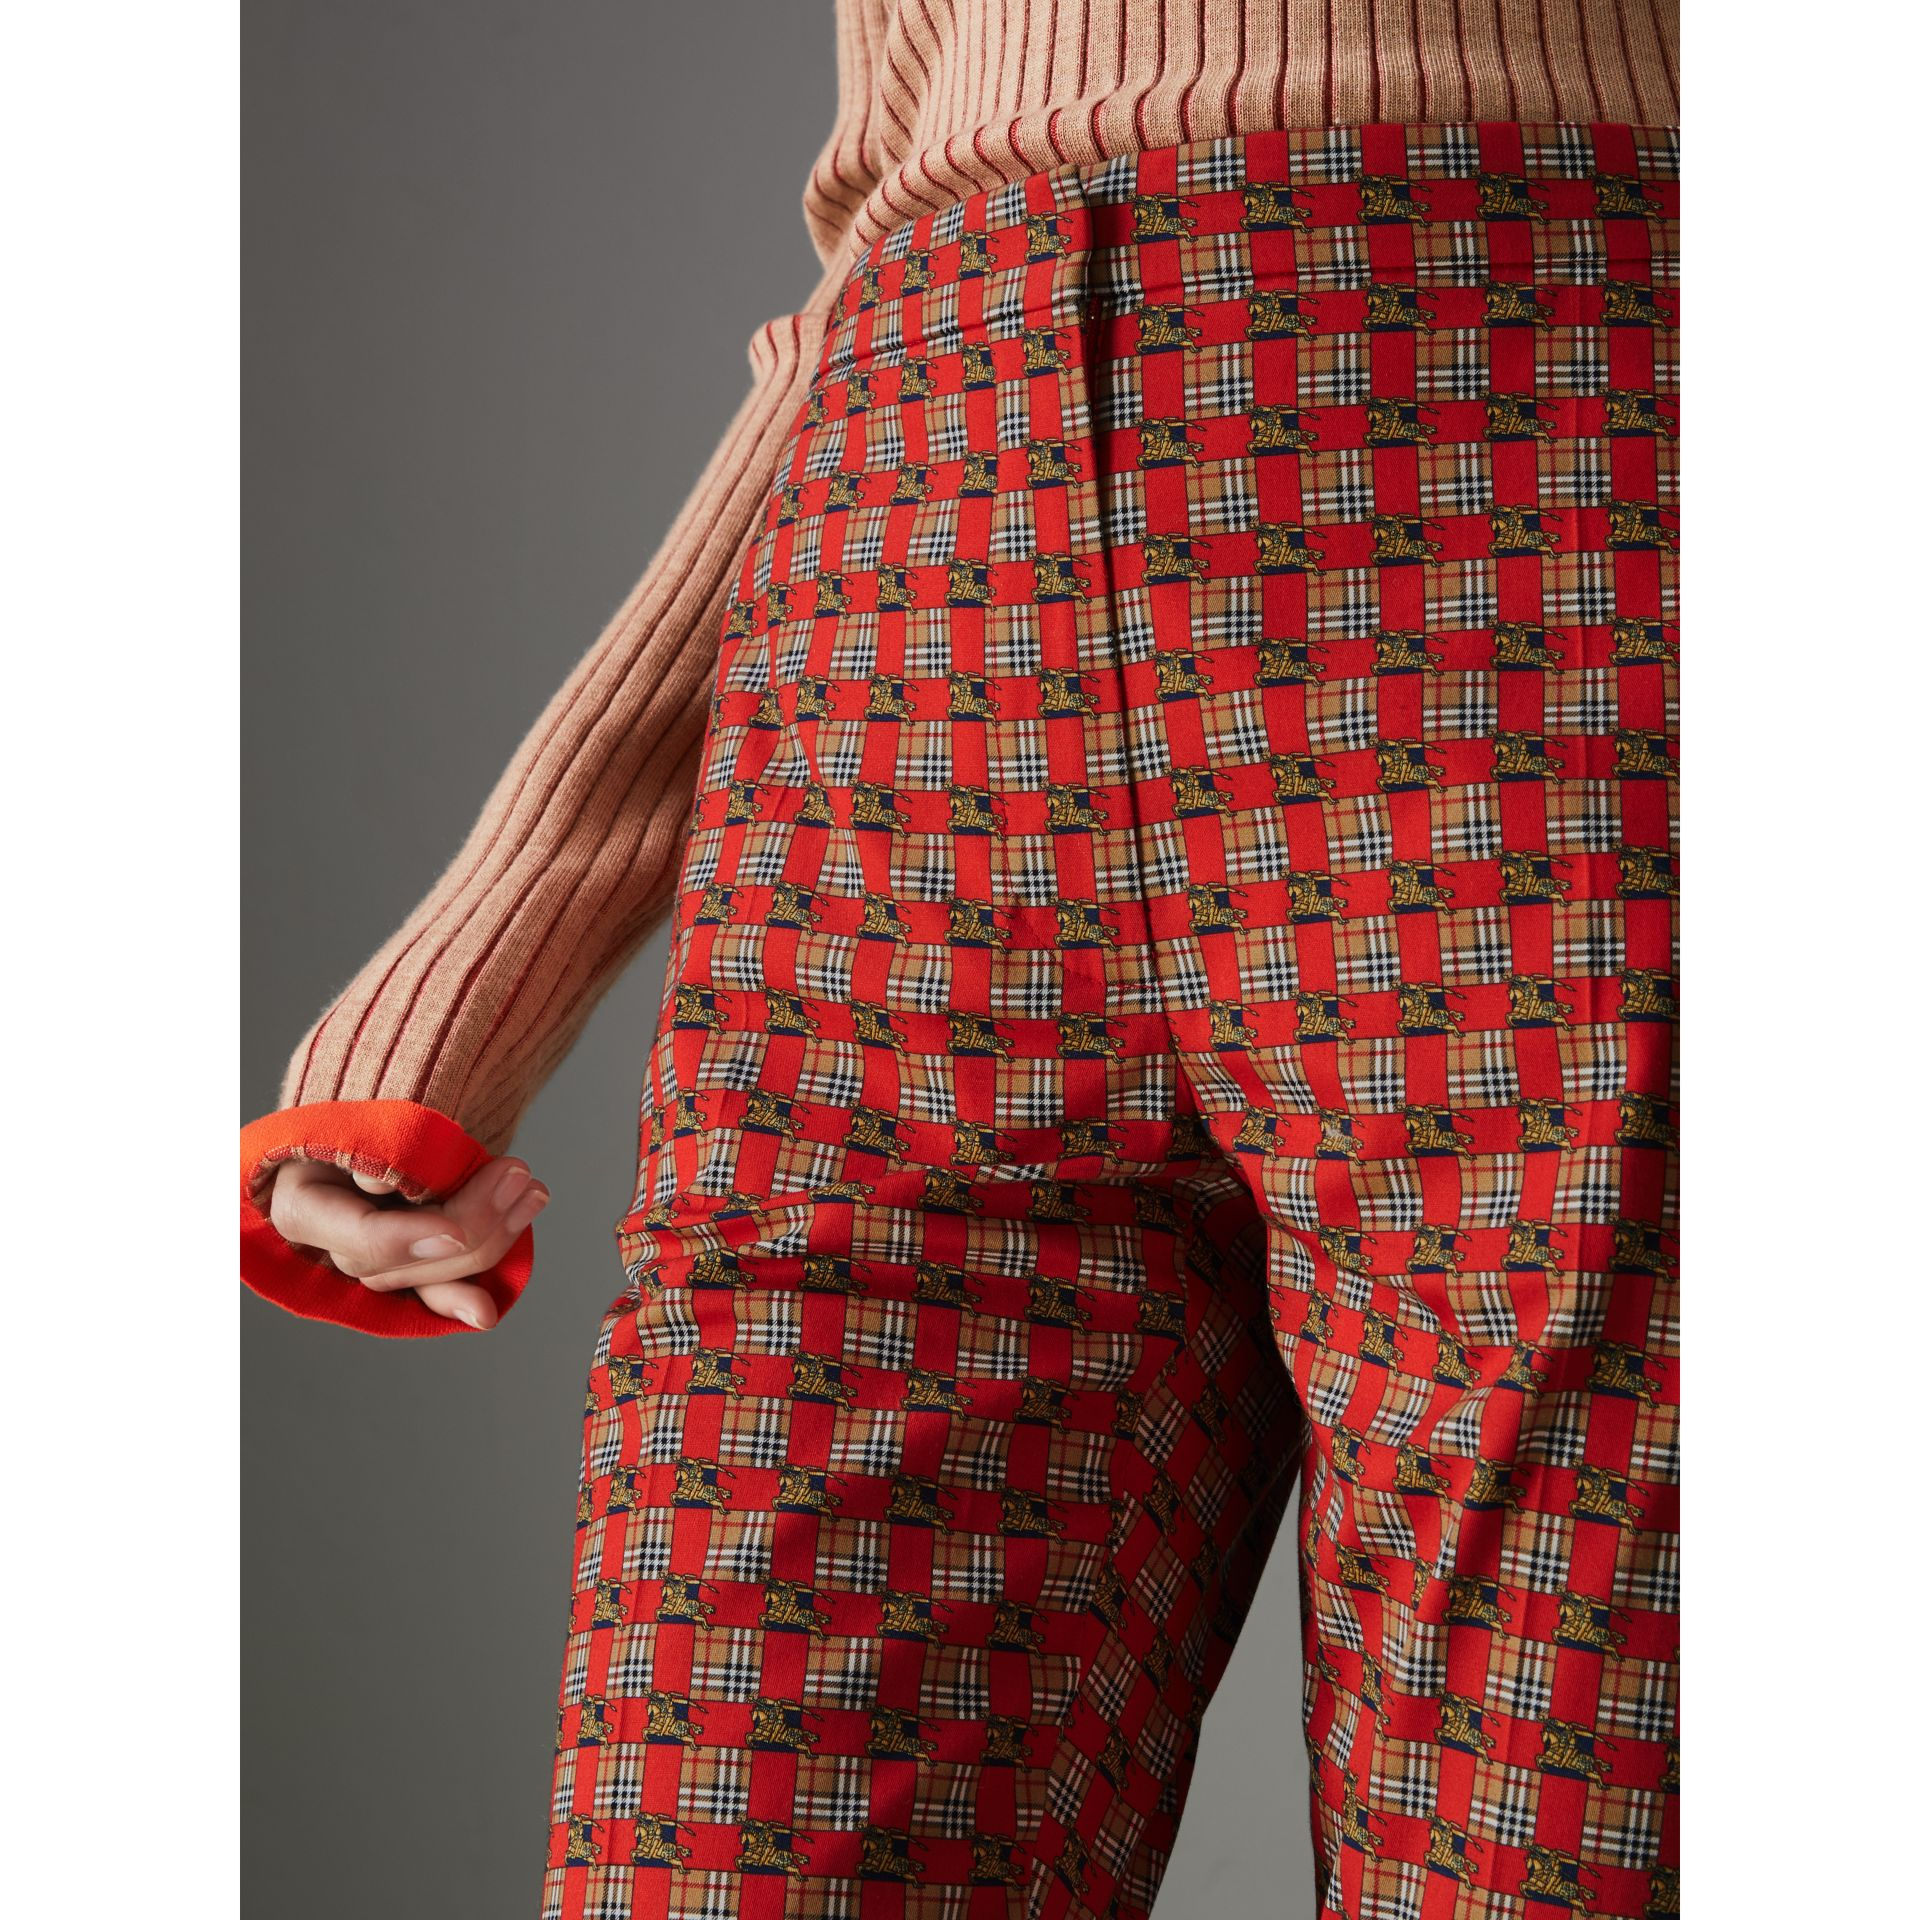 Tiled Archive Print Stretch Cotton Cigarette Trousers in Orange Red - Women | Burberry Canada - gallery image 4